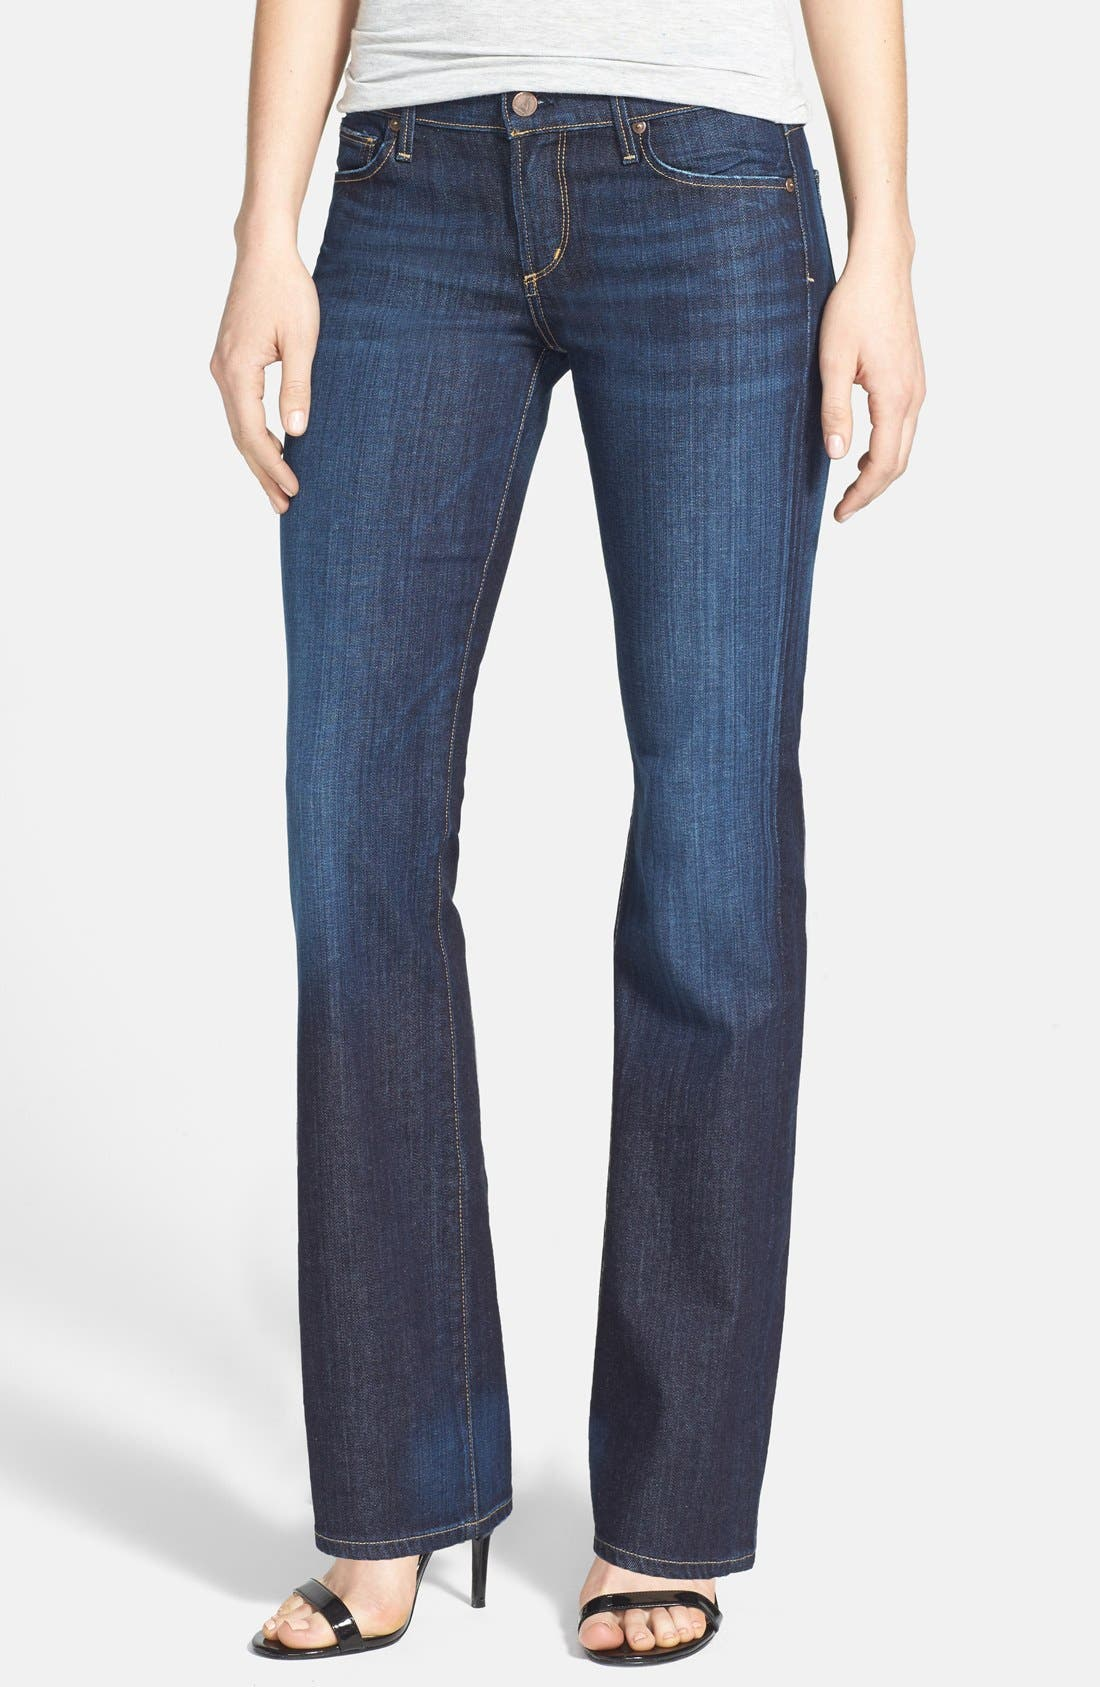 Main Image - Citizens of Humanity 'Dita' Bootcut Stretch Jeans (New Pacific) (Petite)